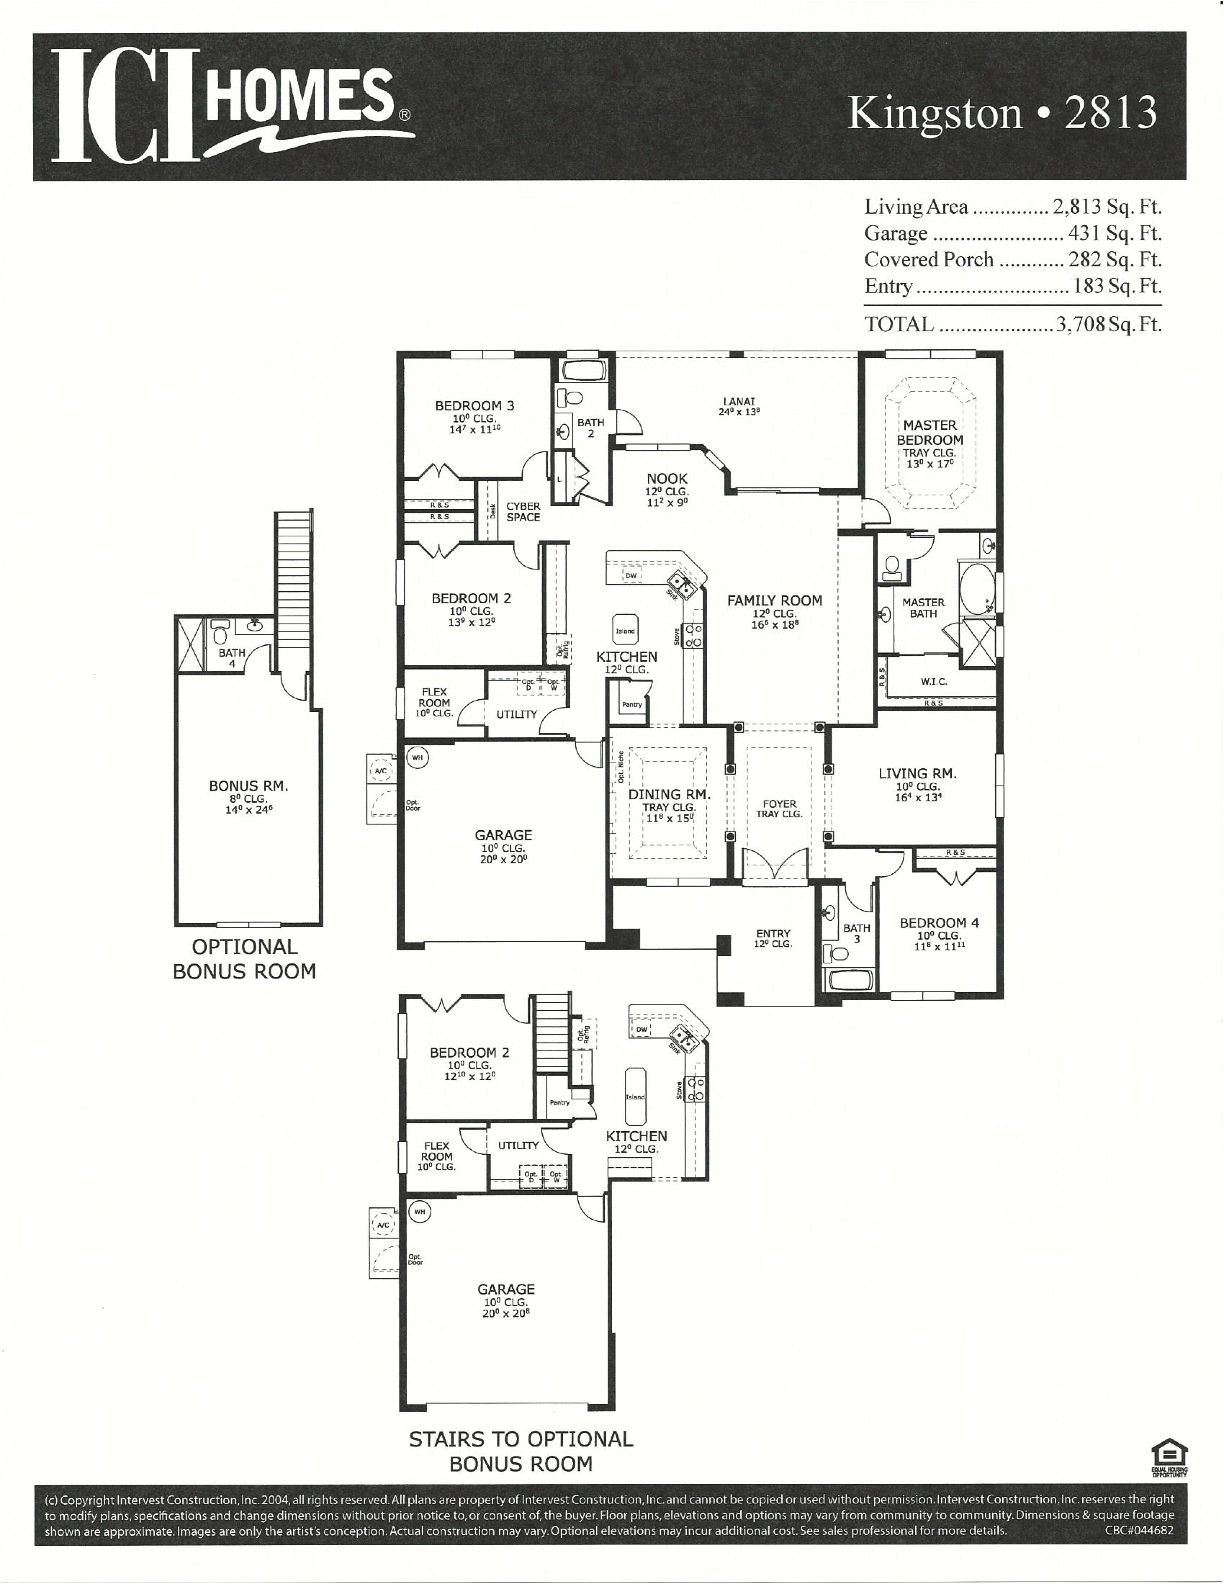 breathtaking ici homes floor plans 29 isabella 1ail